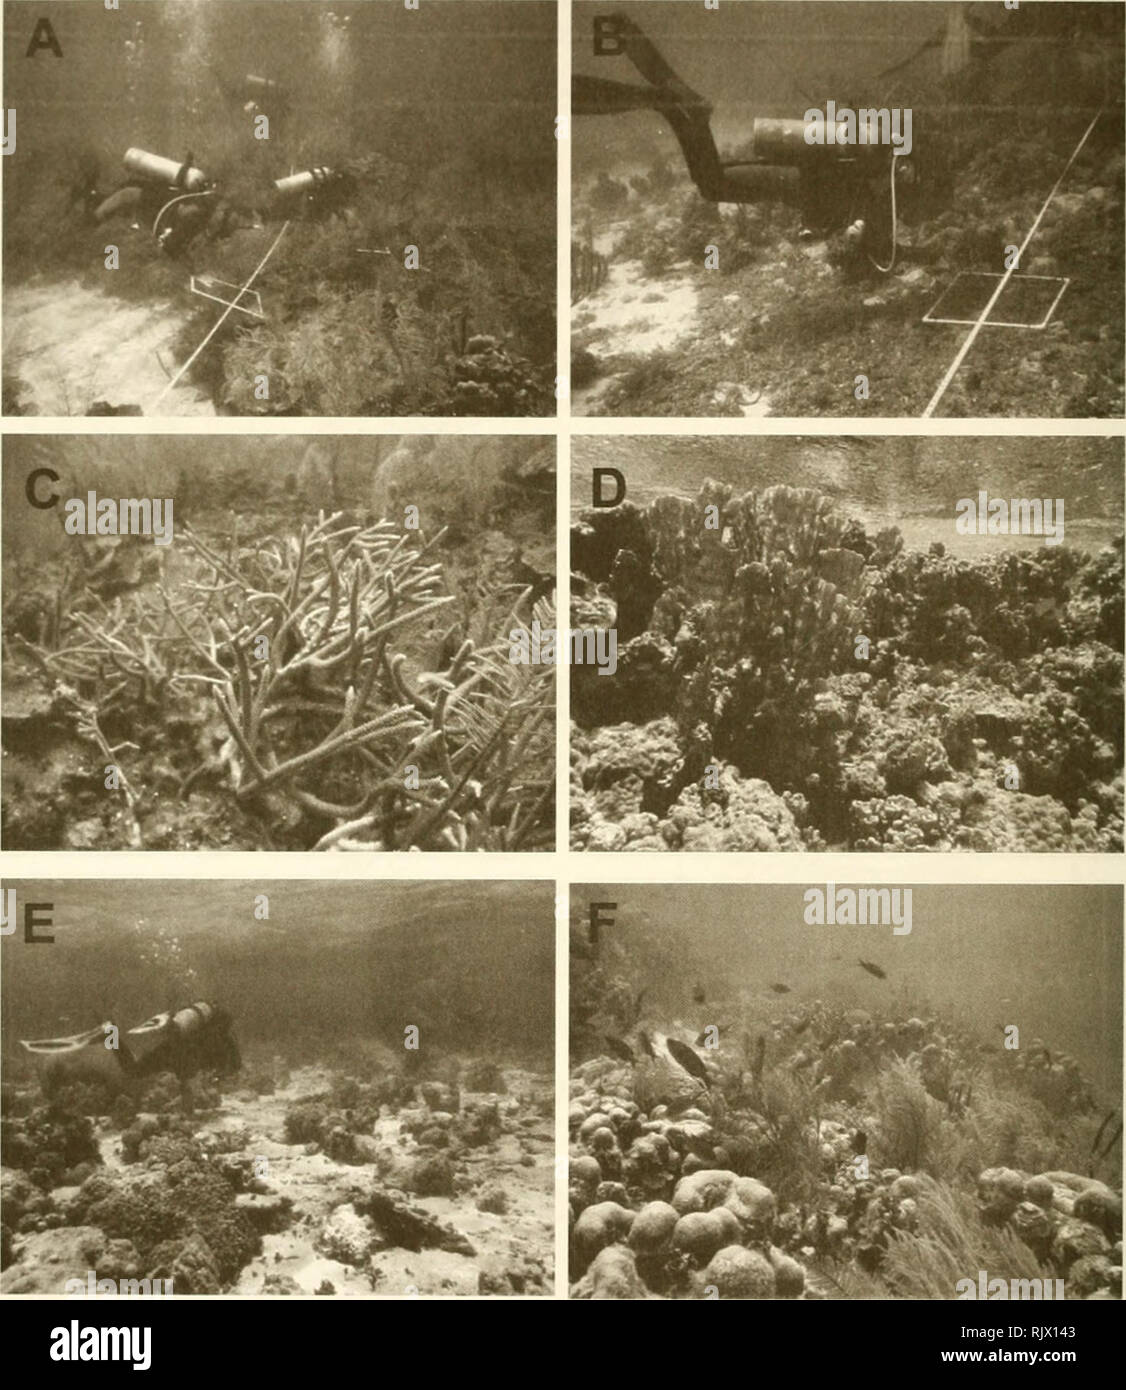 . Atoll research bulletin. Coral reefs and islands; Marine biology; Marine sciences. 26. Figure 14. Serrana Bank environments. A. Leeward terrace; B. lagoon basin with Lobophora variegata mat; C. Acropora cervicornis on the leeward terrace; D. Millepora complanata on top of A. palmata reef; E. shallow lagoonal patch reefs; F. Montastraea annularis in the lagoon and gorgonians (Pseudopterogorgia bipinnata).. Please note that these images are extracted from scanned page images that may have been digitally enhanced for readability - coloration and appearance of these illustrations may not perfect - Stock Image